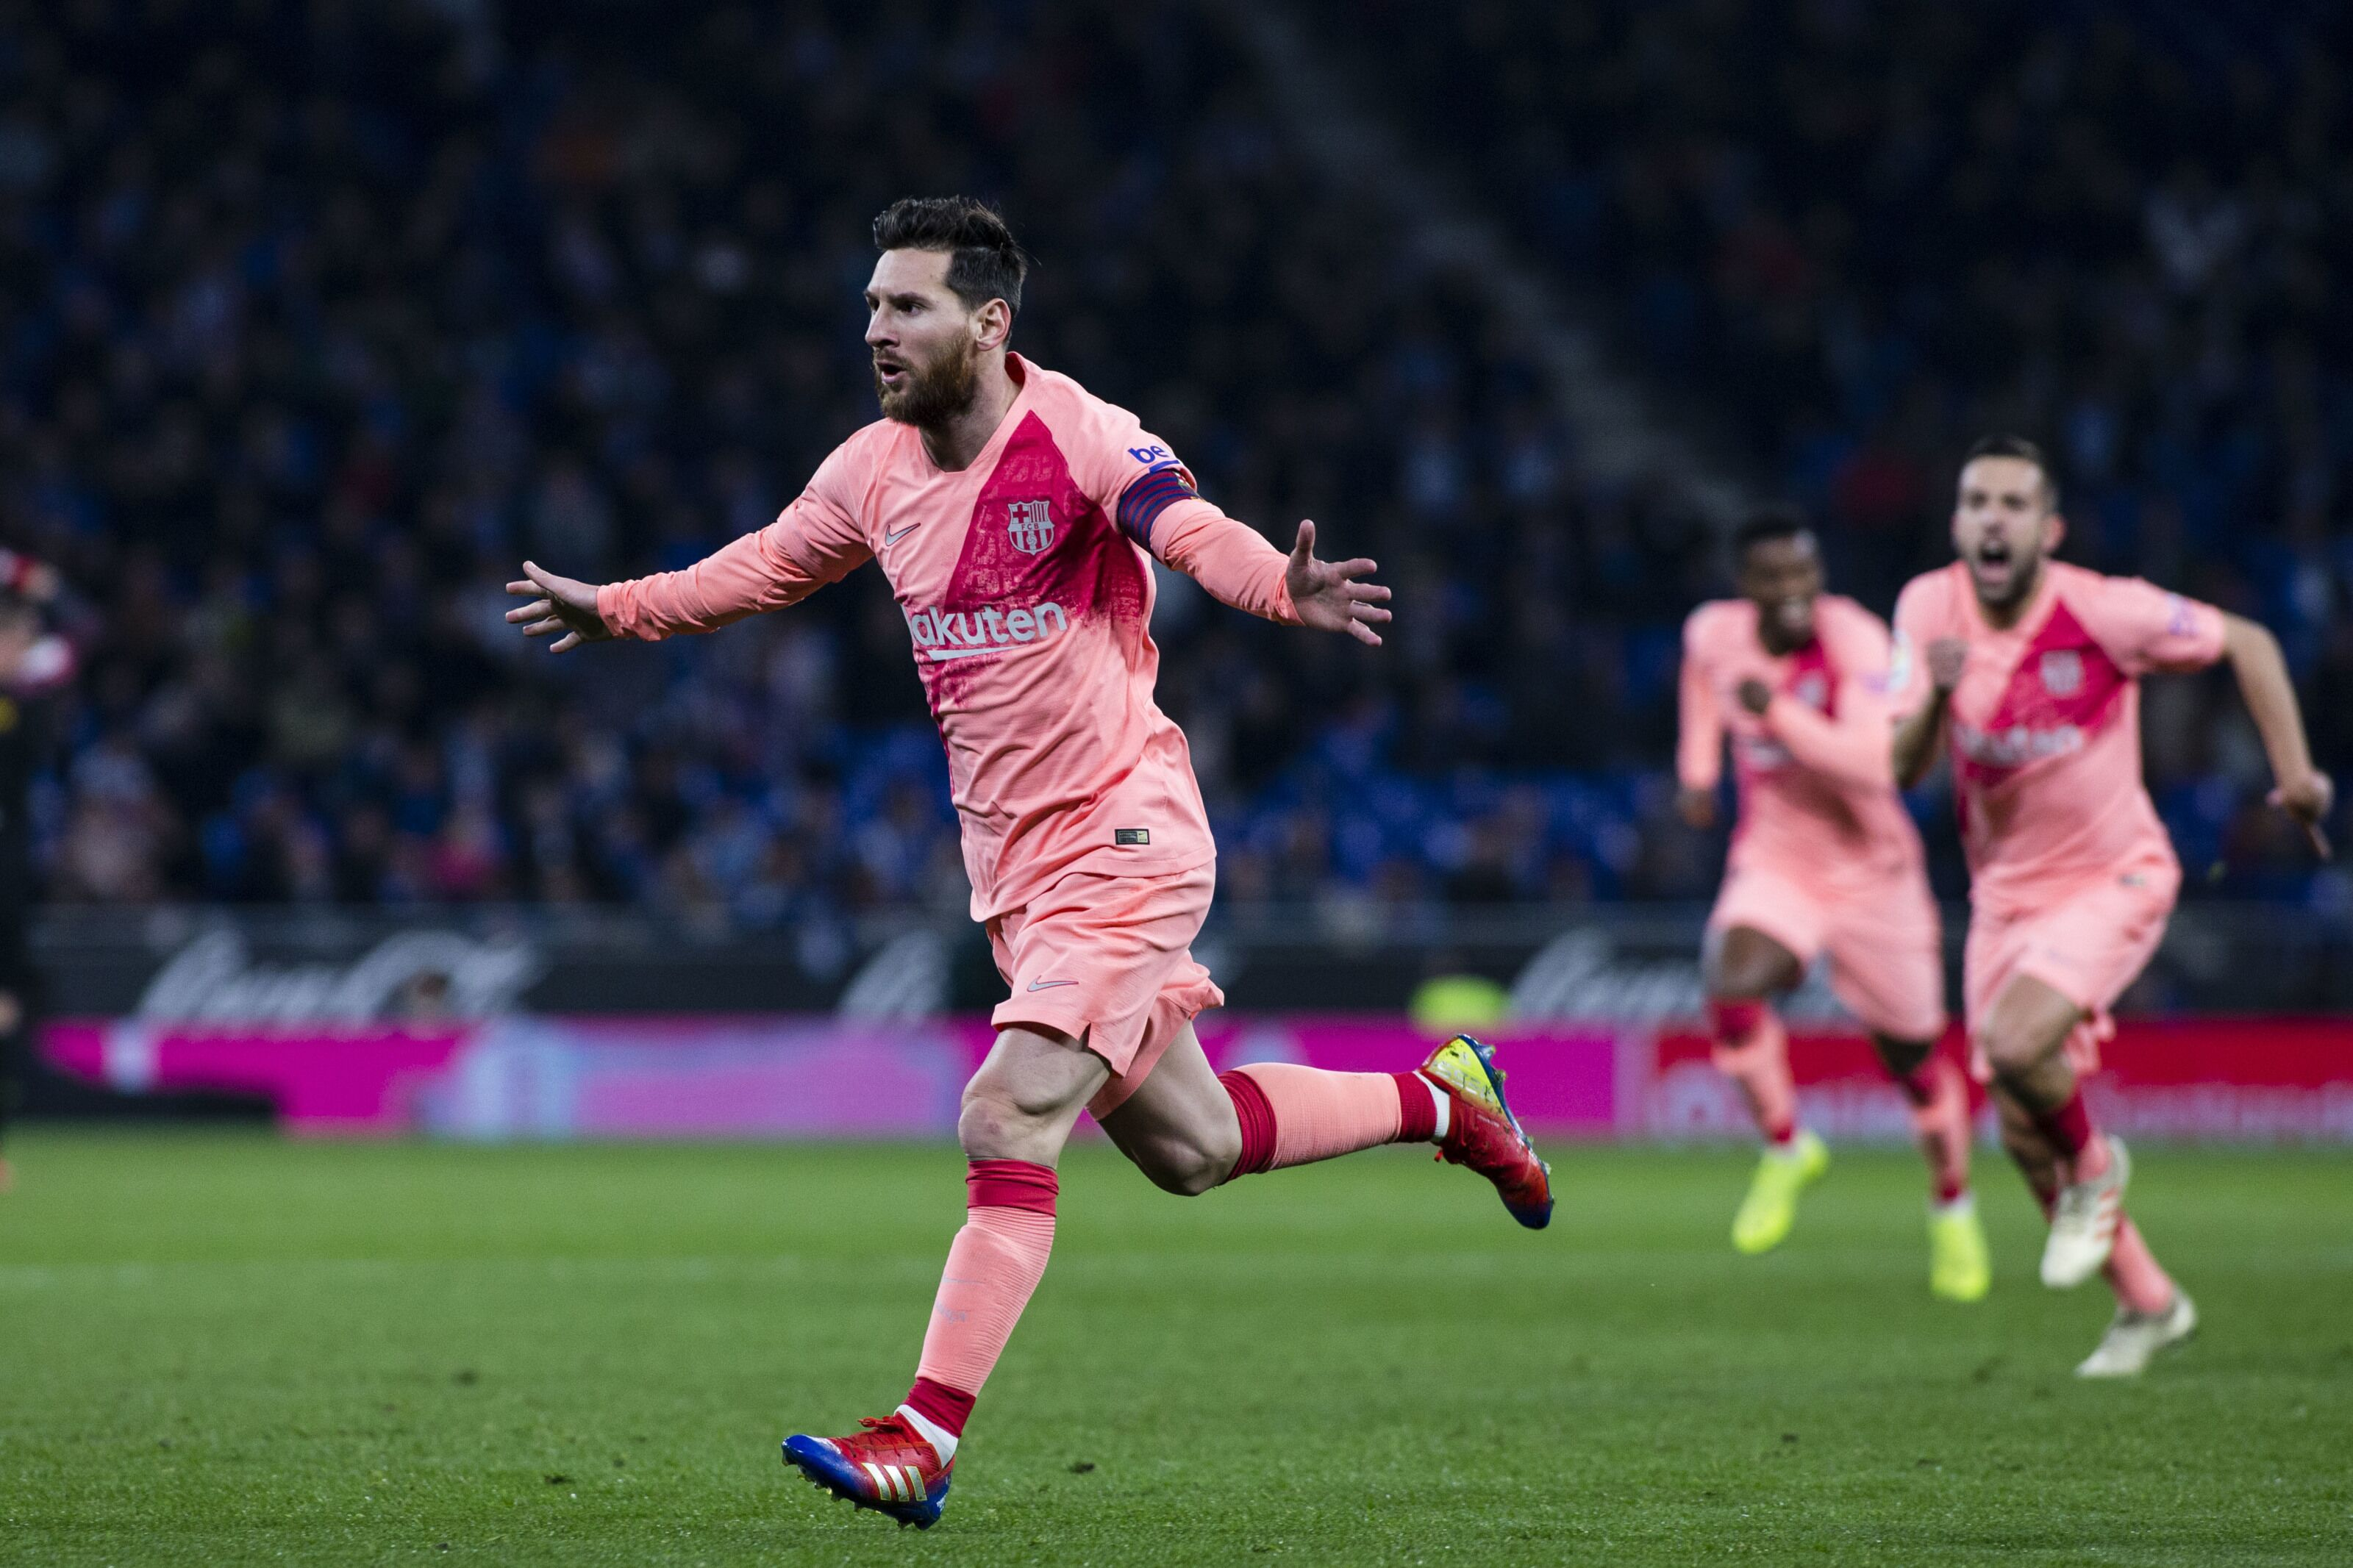 Barcelona identify Messi's replacement and want him in 2021